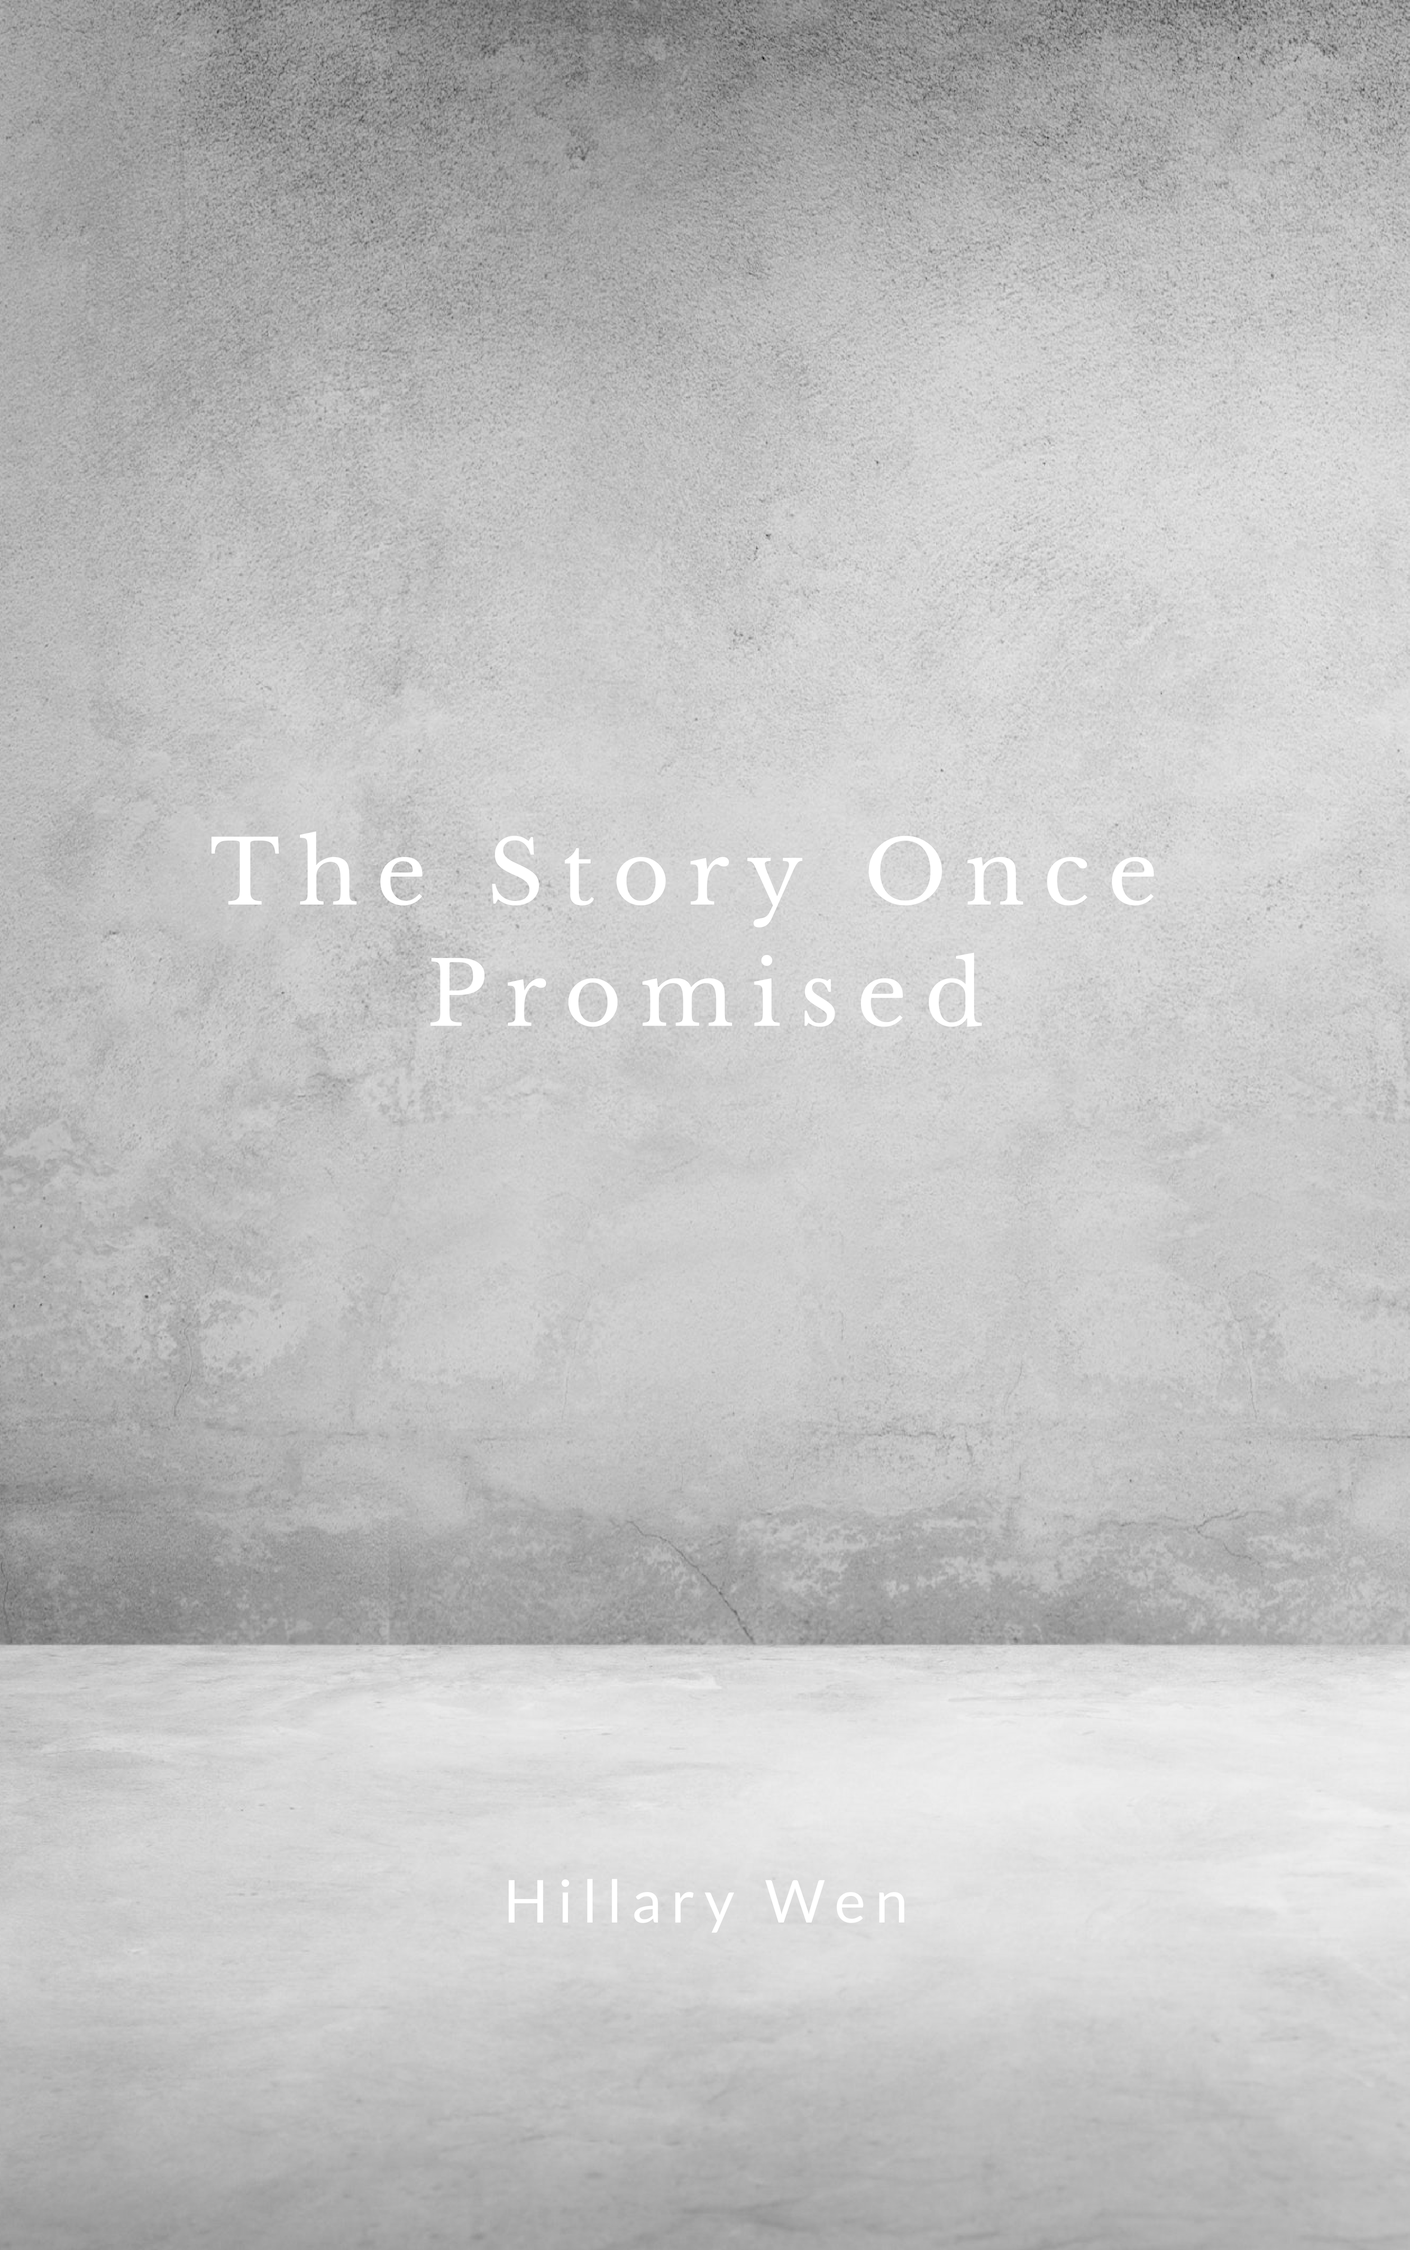 The Story Once Promised, By Hillary Wen